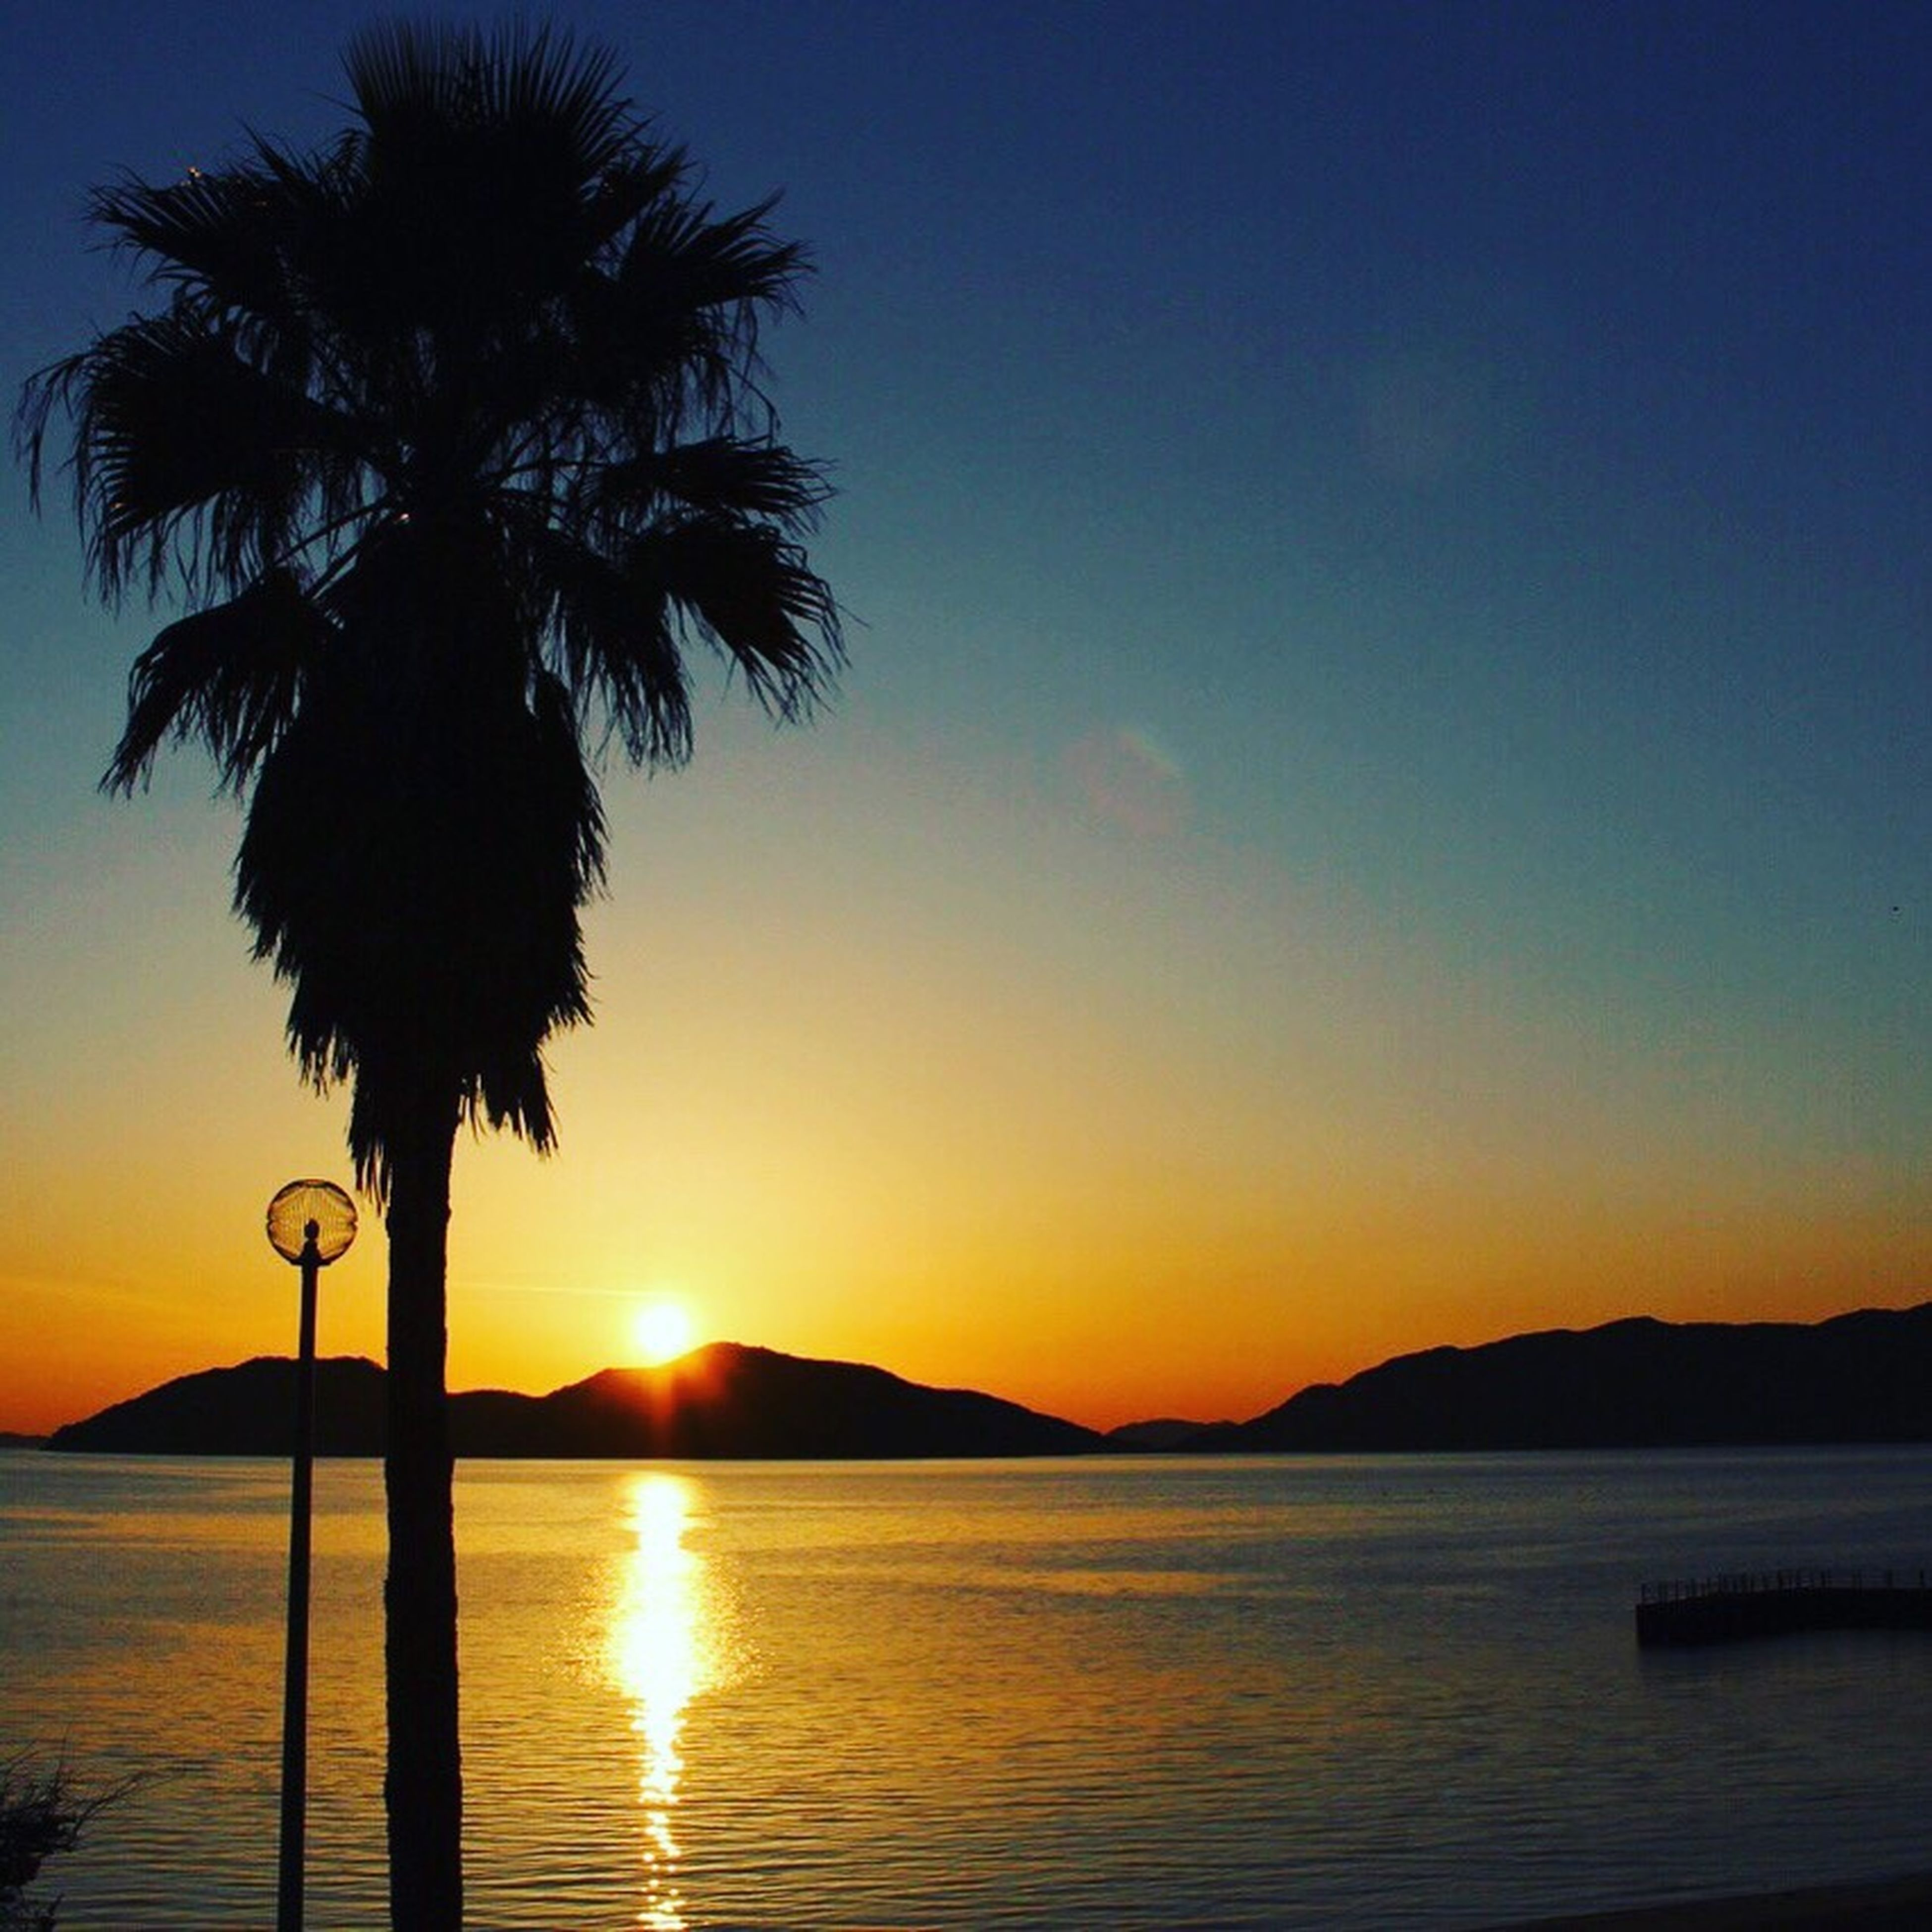 sunset, water, tranquil scene, scenics, silhouette, sea, tranquility, beauty in nature, sun, palm tree, orange color, idyllic, nature, mountain, sky, reflection, horizon over water, tree, clear sky, majestic